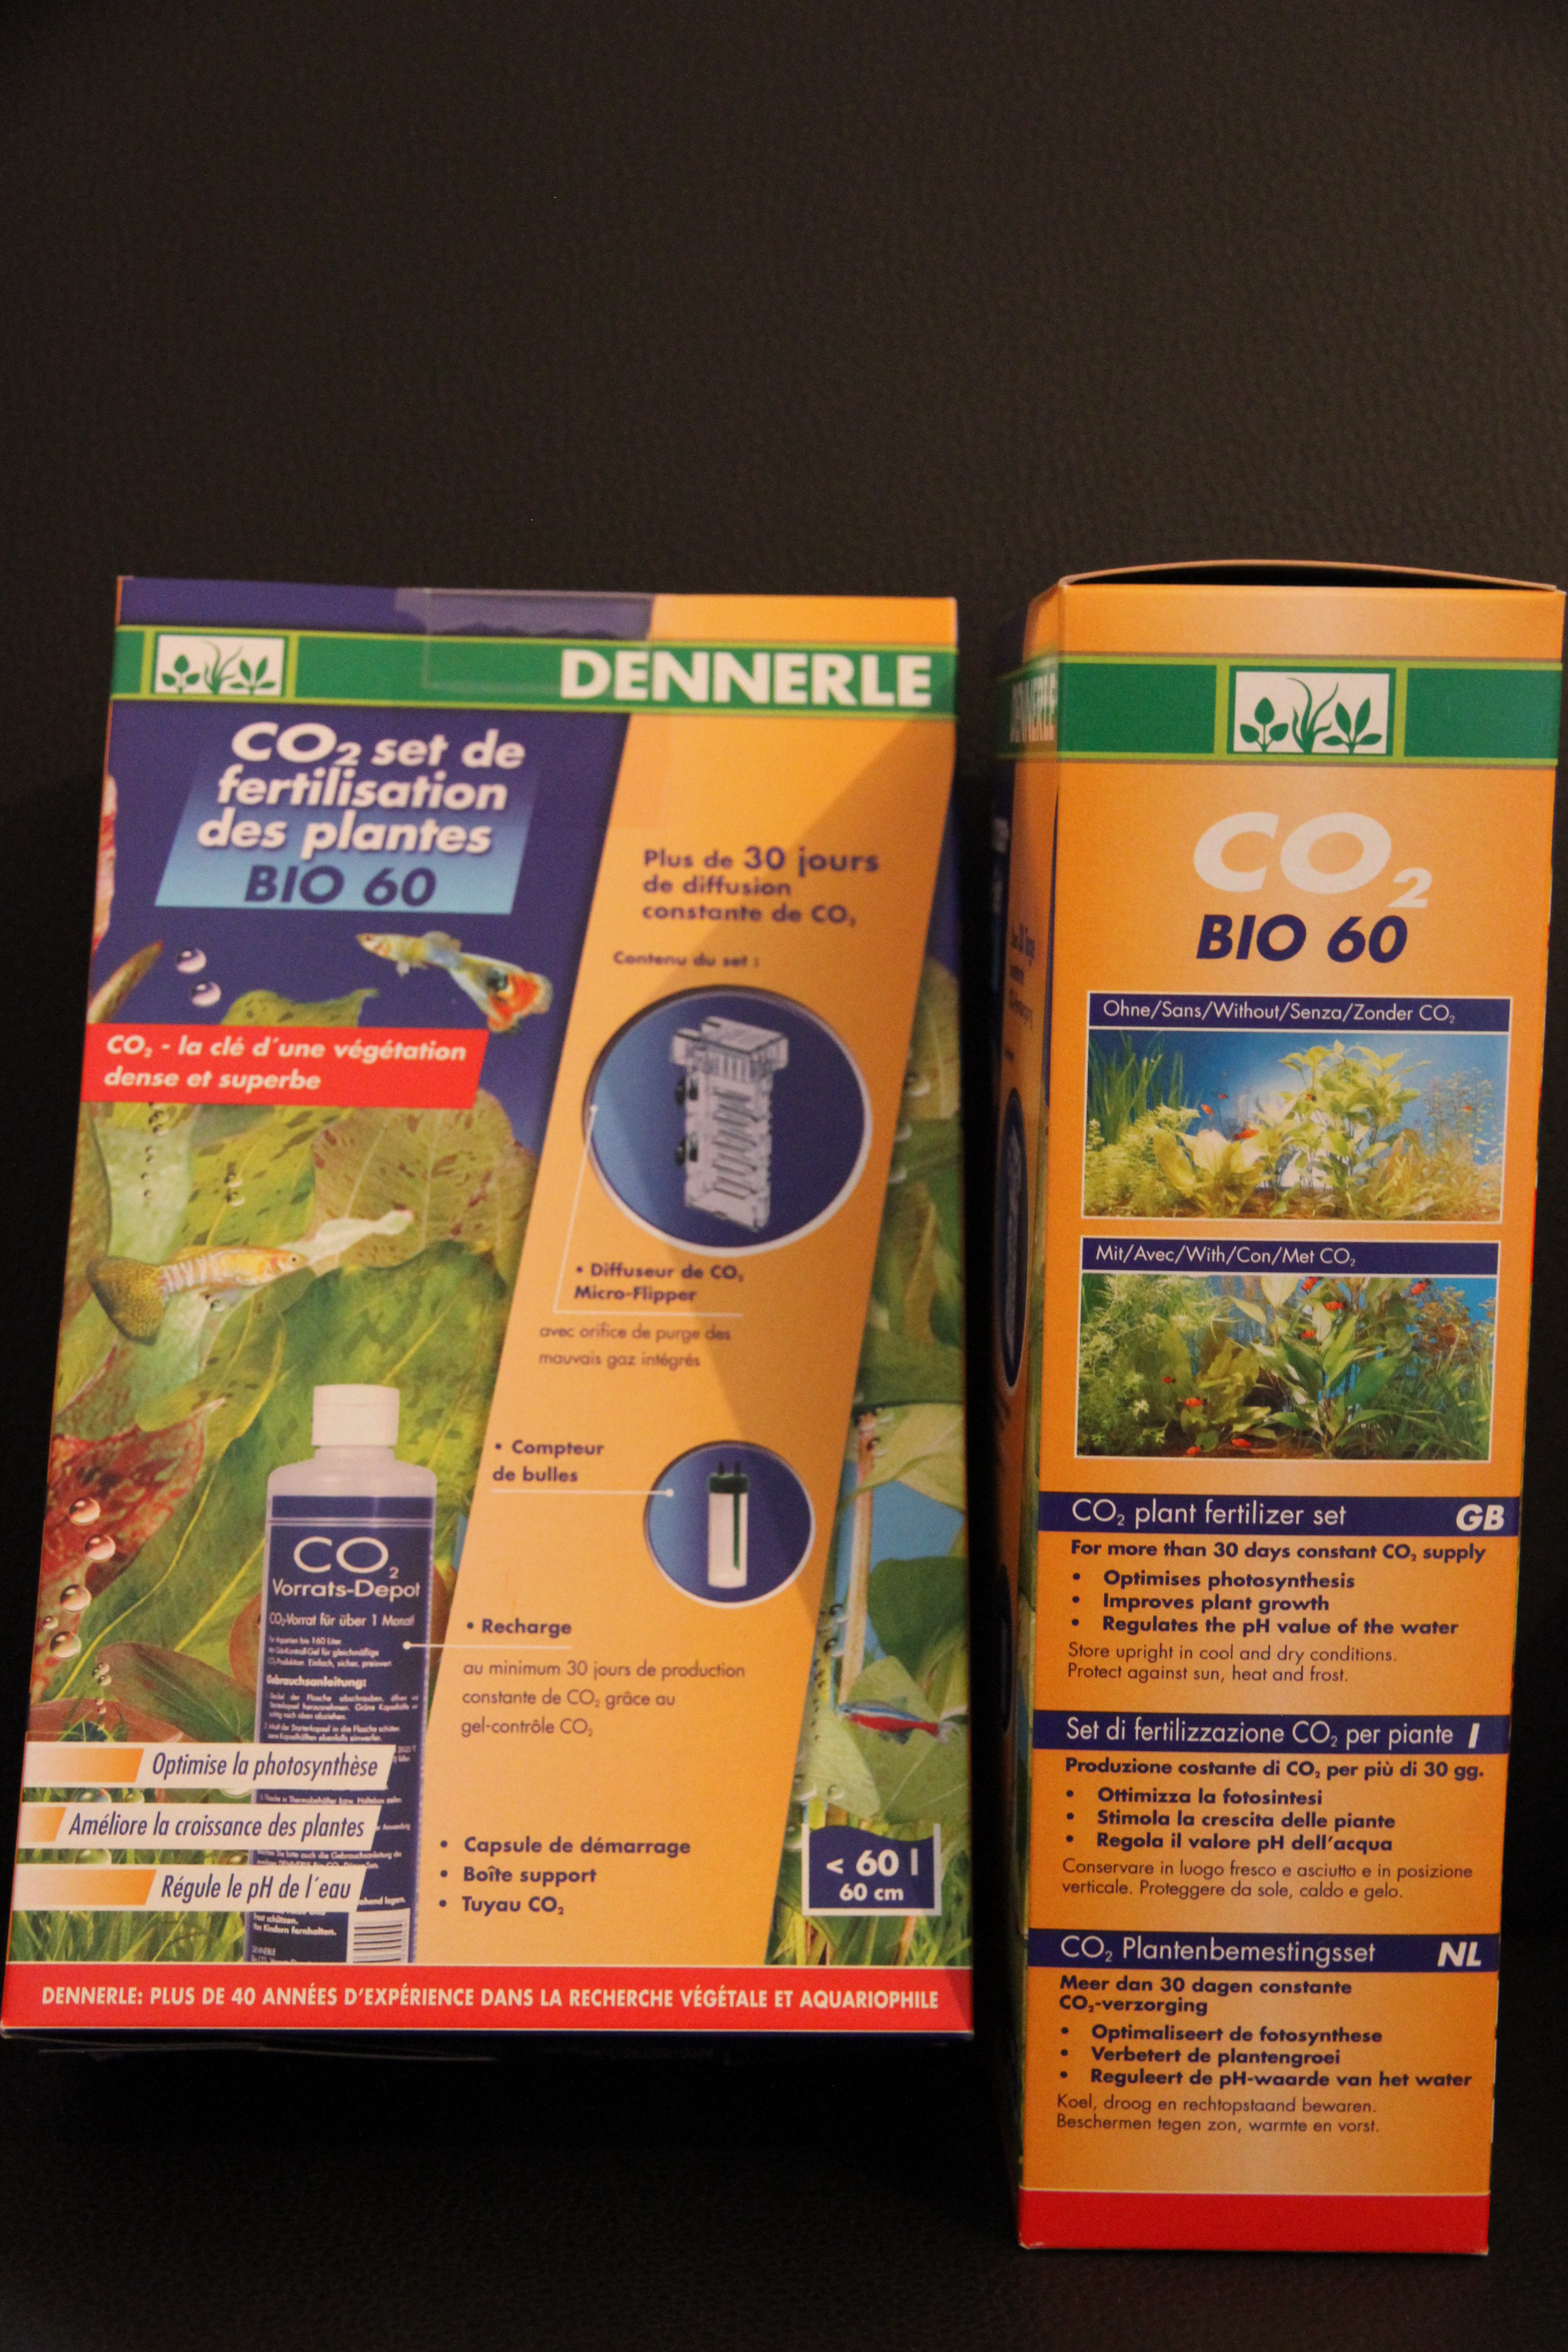 CO2 Plant Fertilizer Set BIO 60